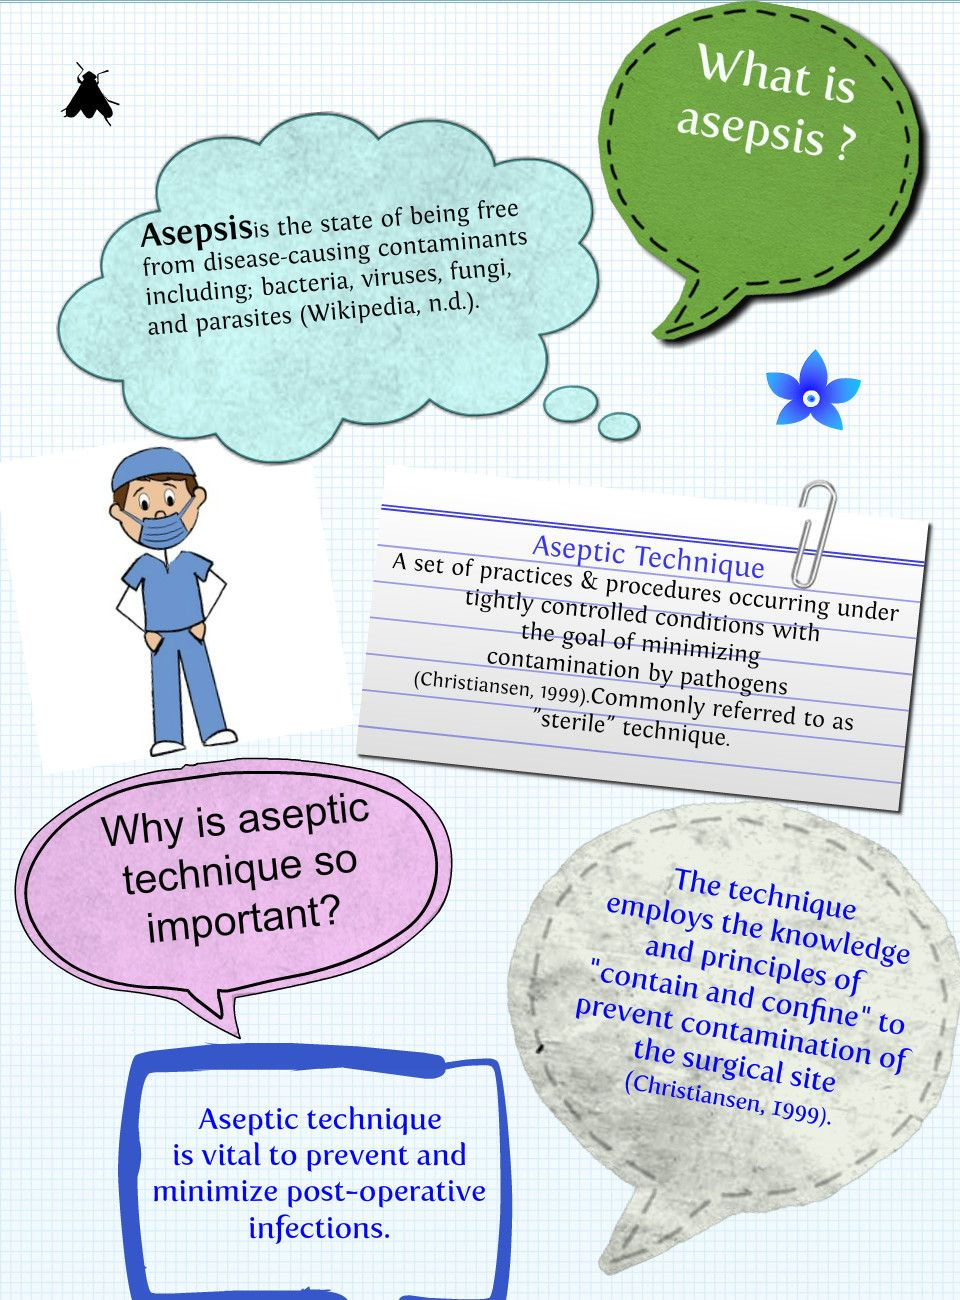 medical asepsis - Google Search | 131 Exam# 1 | Pinterest | Search ...